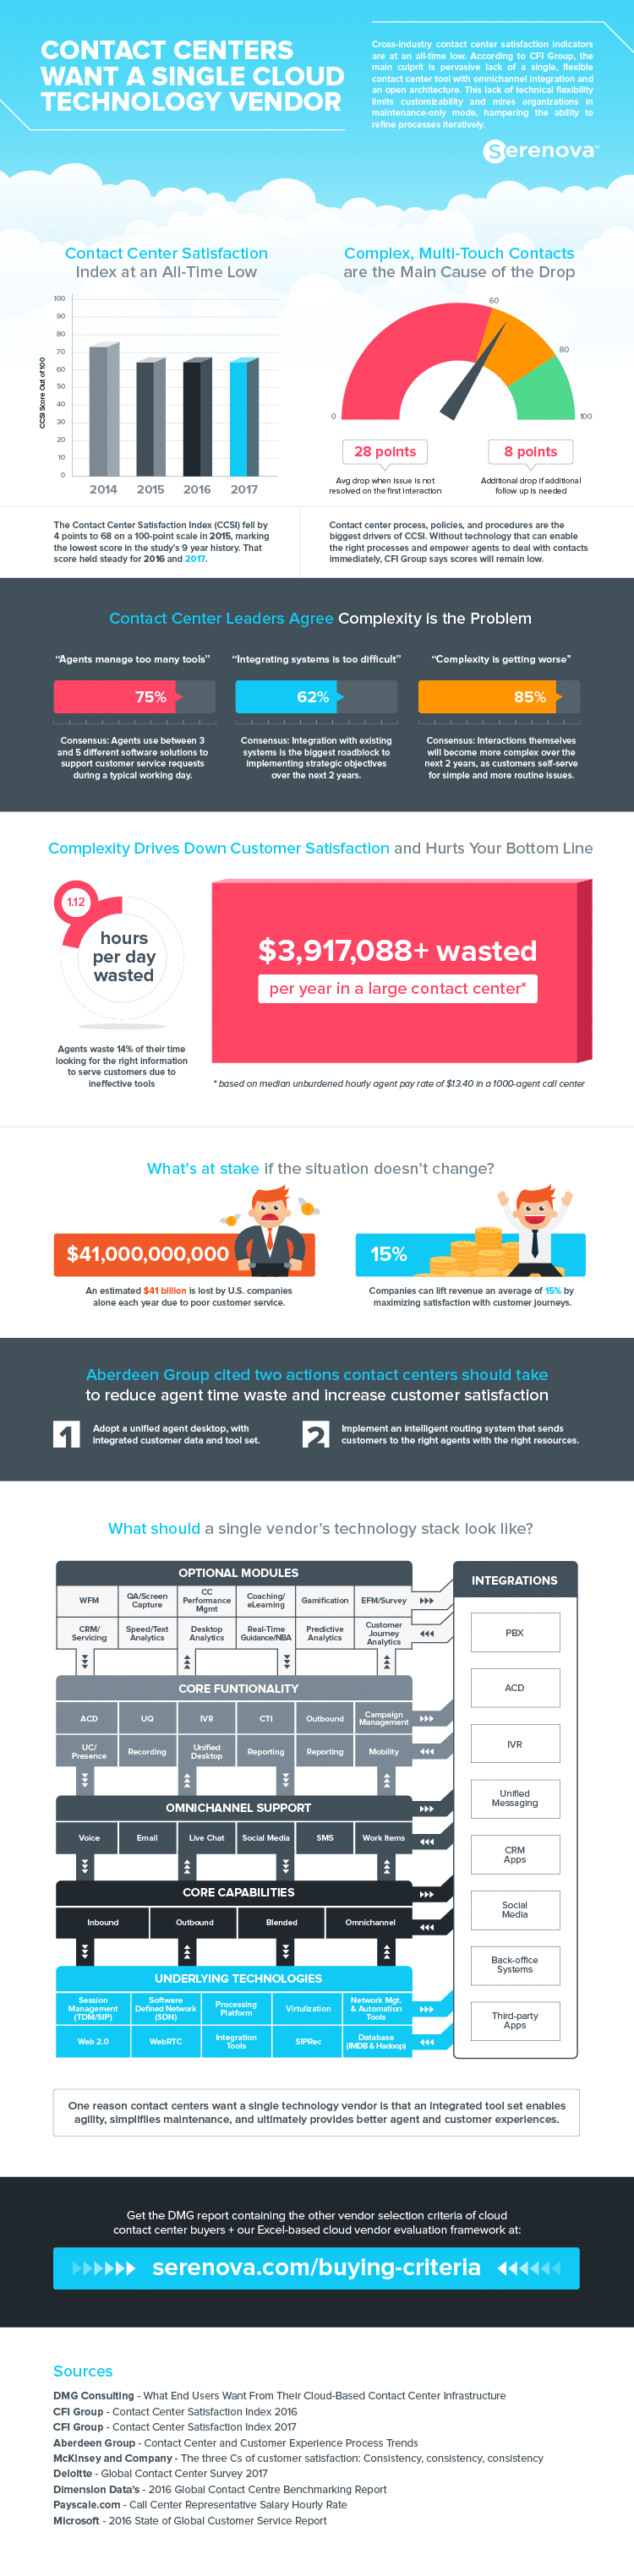 Infographic 'Cloud Contact Centers Want a Single Cloud Vendor' by Serenova